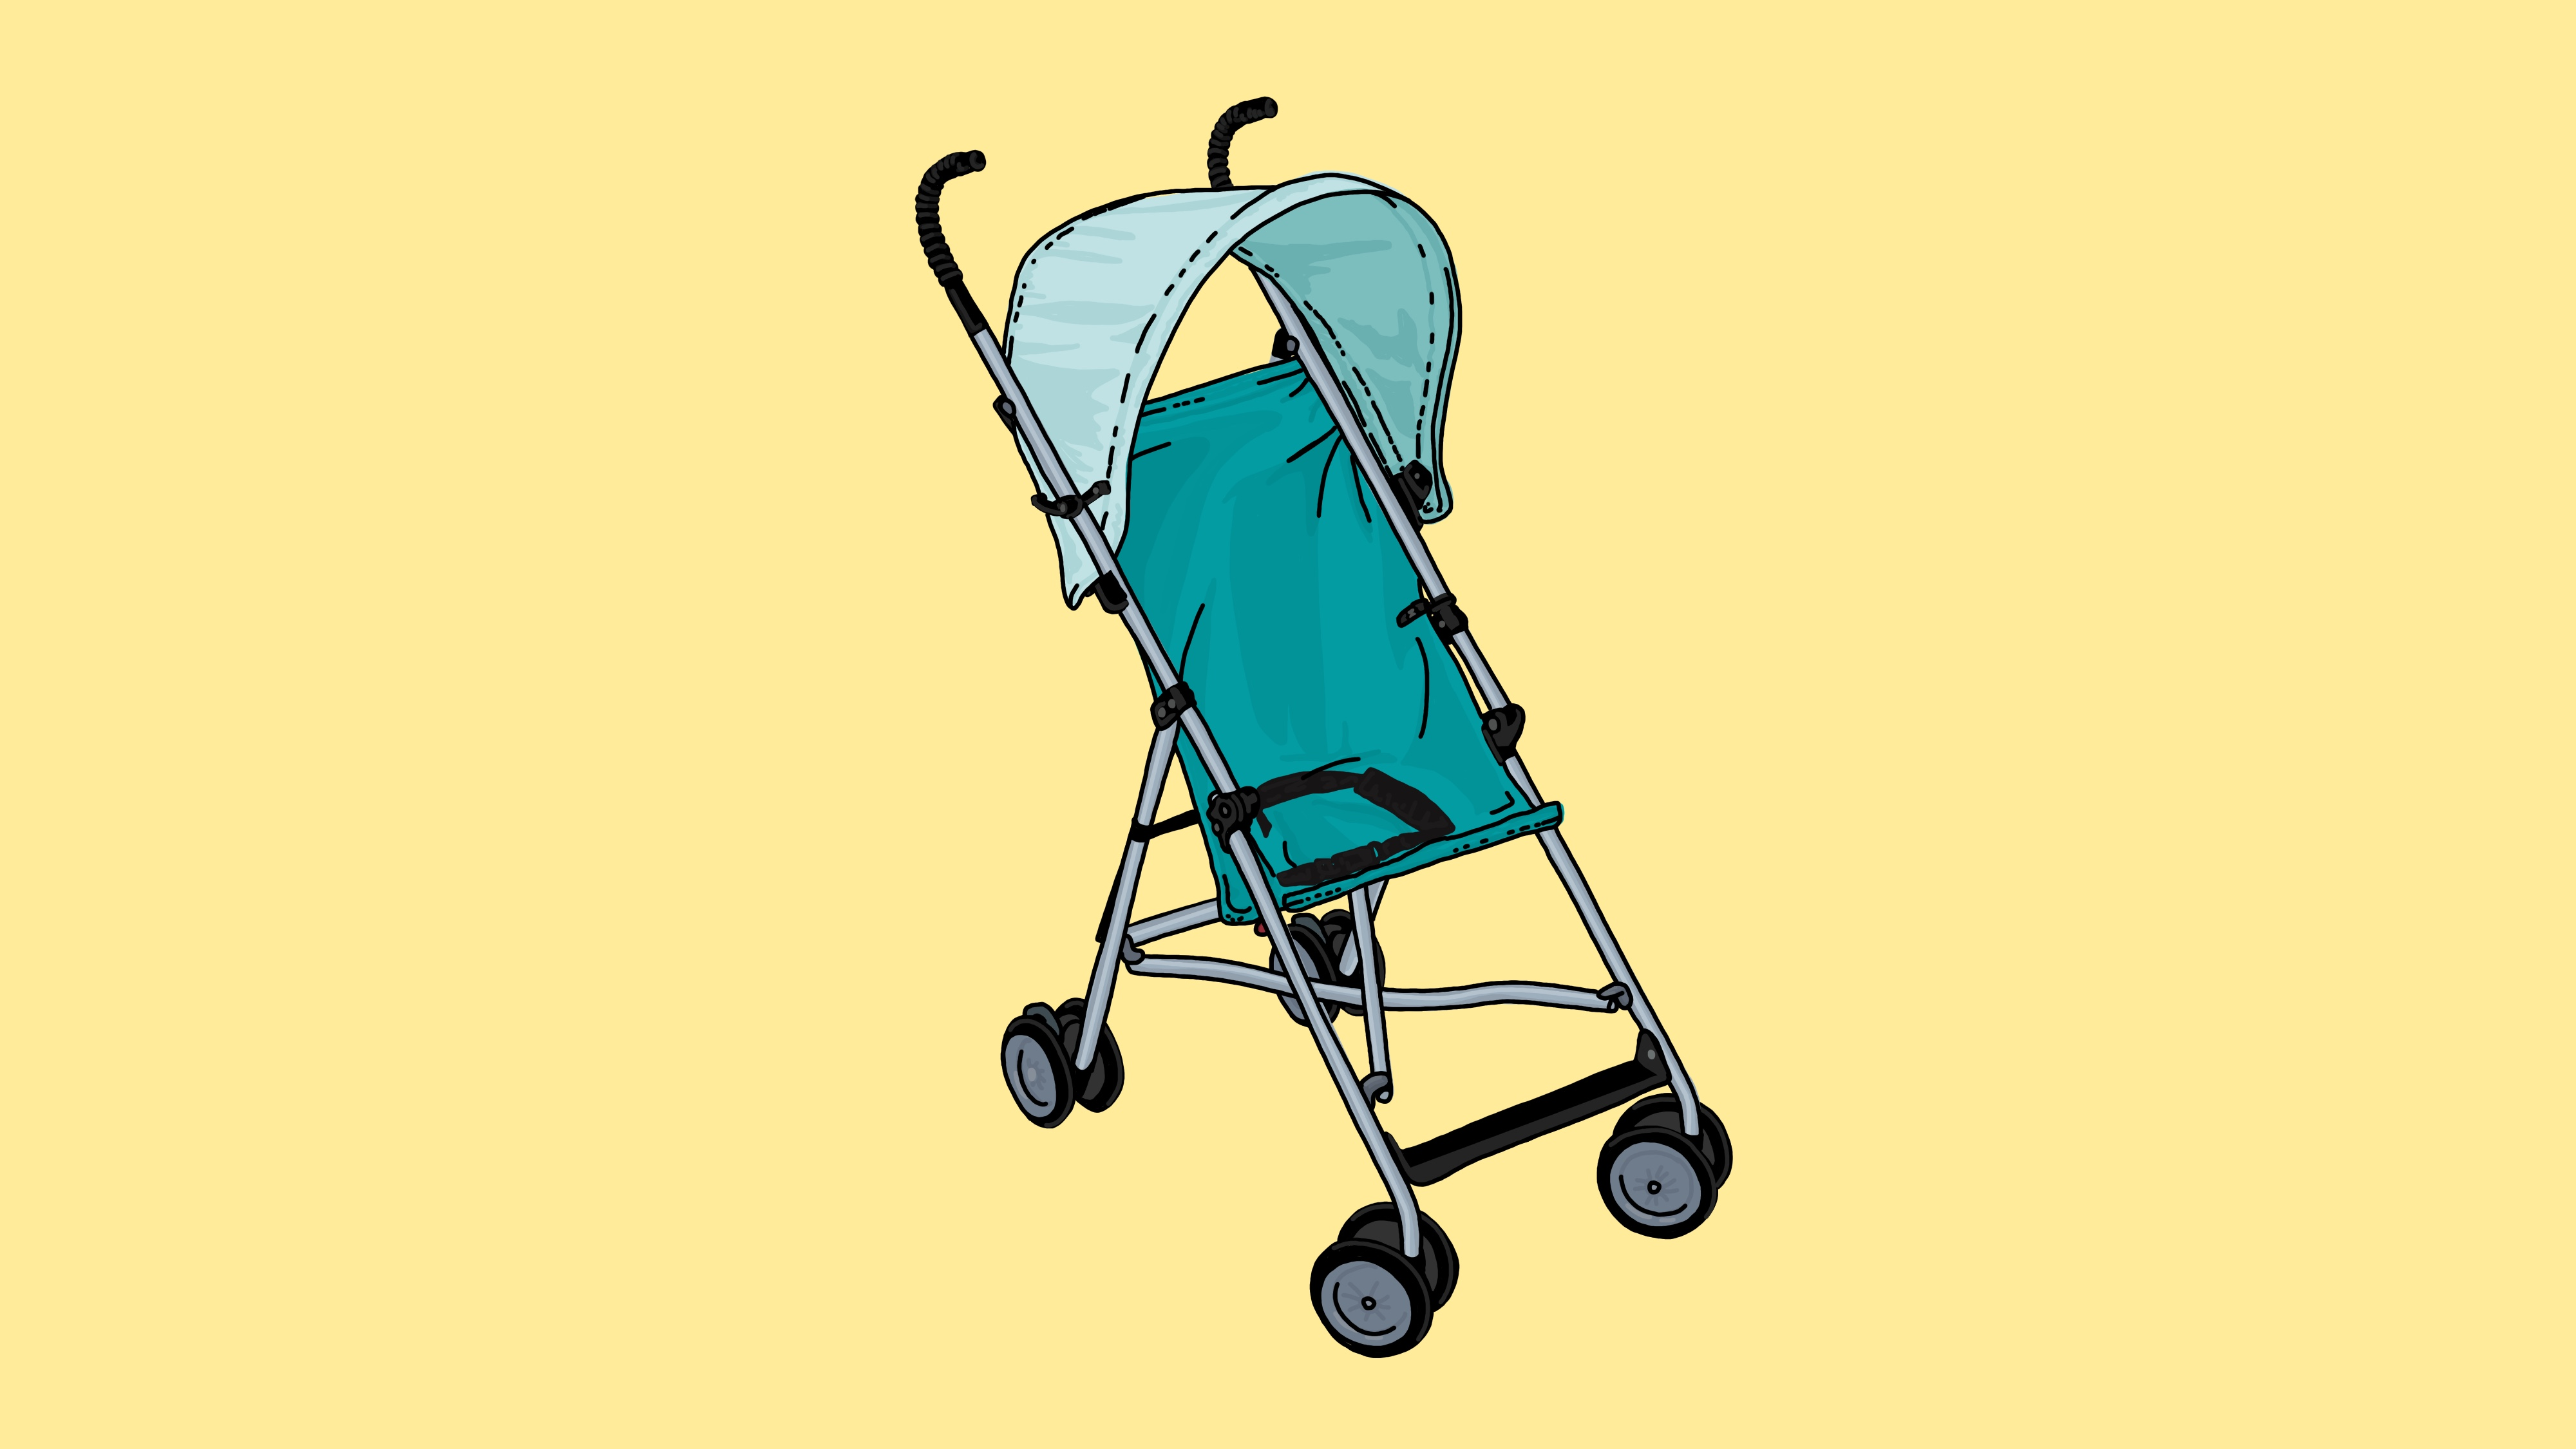 A teal stroller on a yellow background.